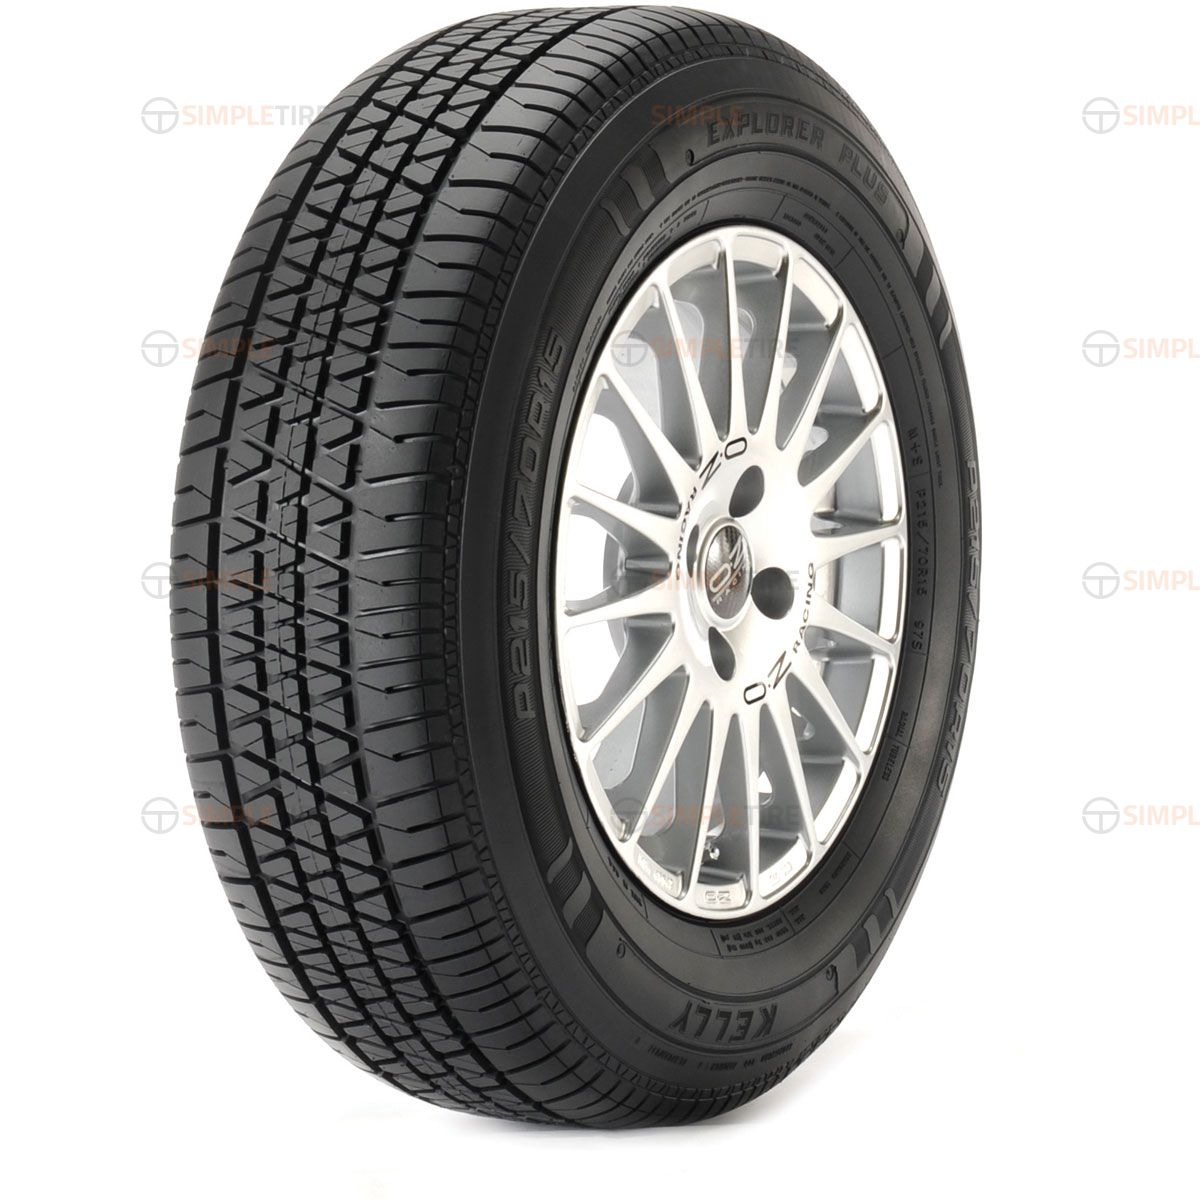 Kelly Tires Explorer P155/80R-13 356661228